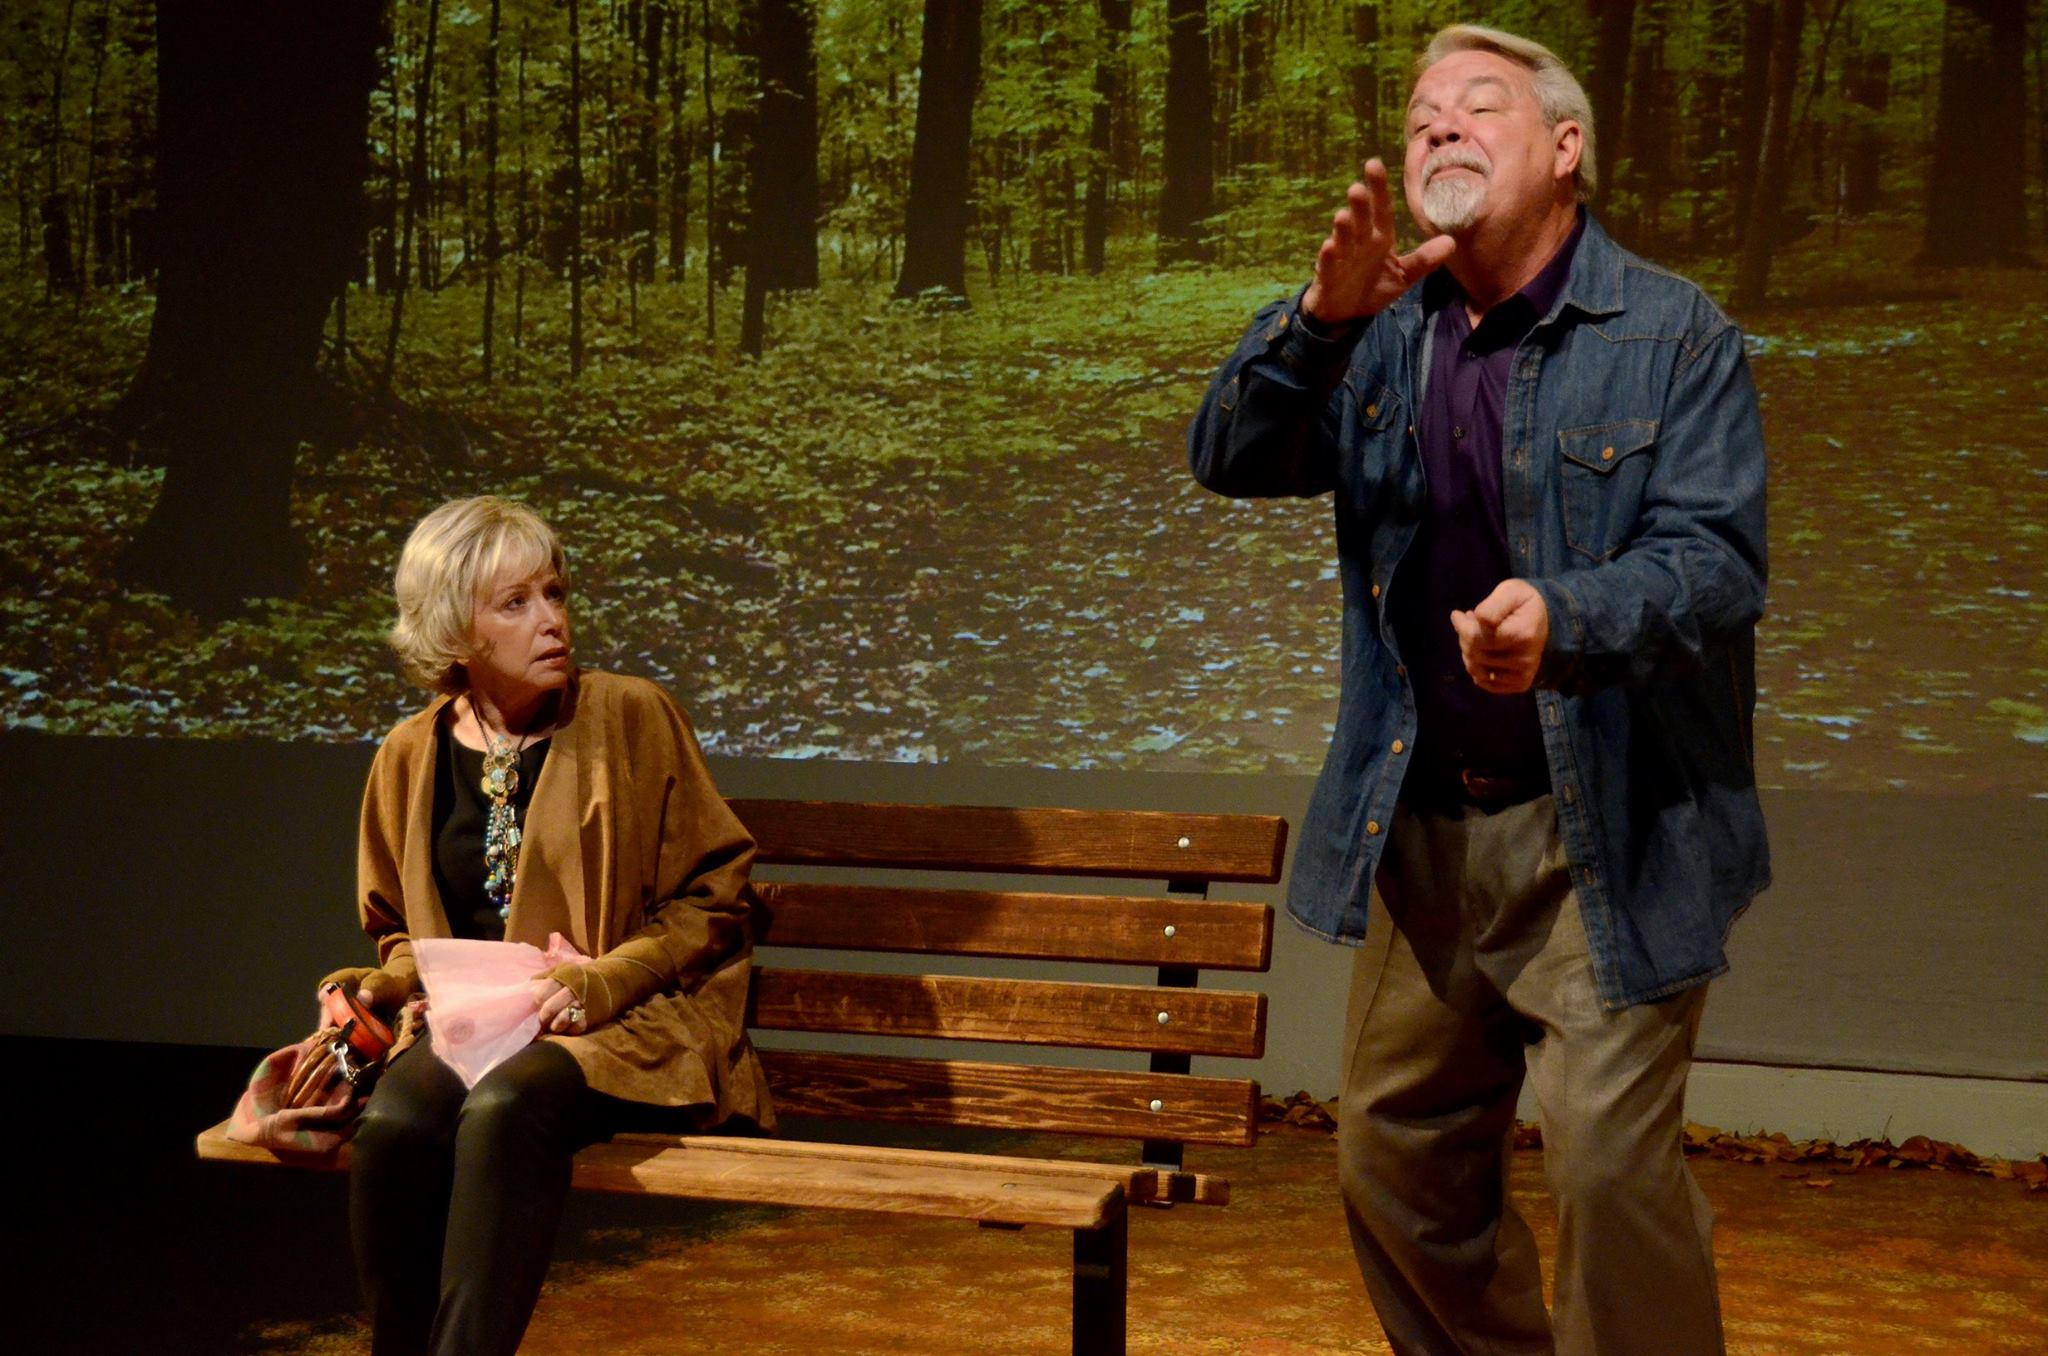 """Judy Lebeau and Michael Fleck in """"The Last Romance"""" at Theatre Artists Studio, 2014. (Photo by Mark Gluckman)"""